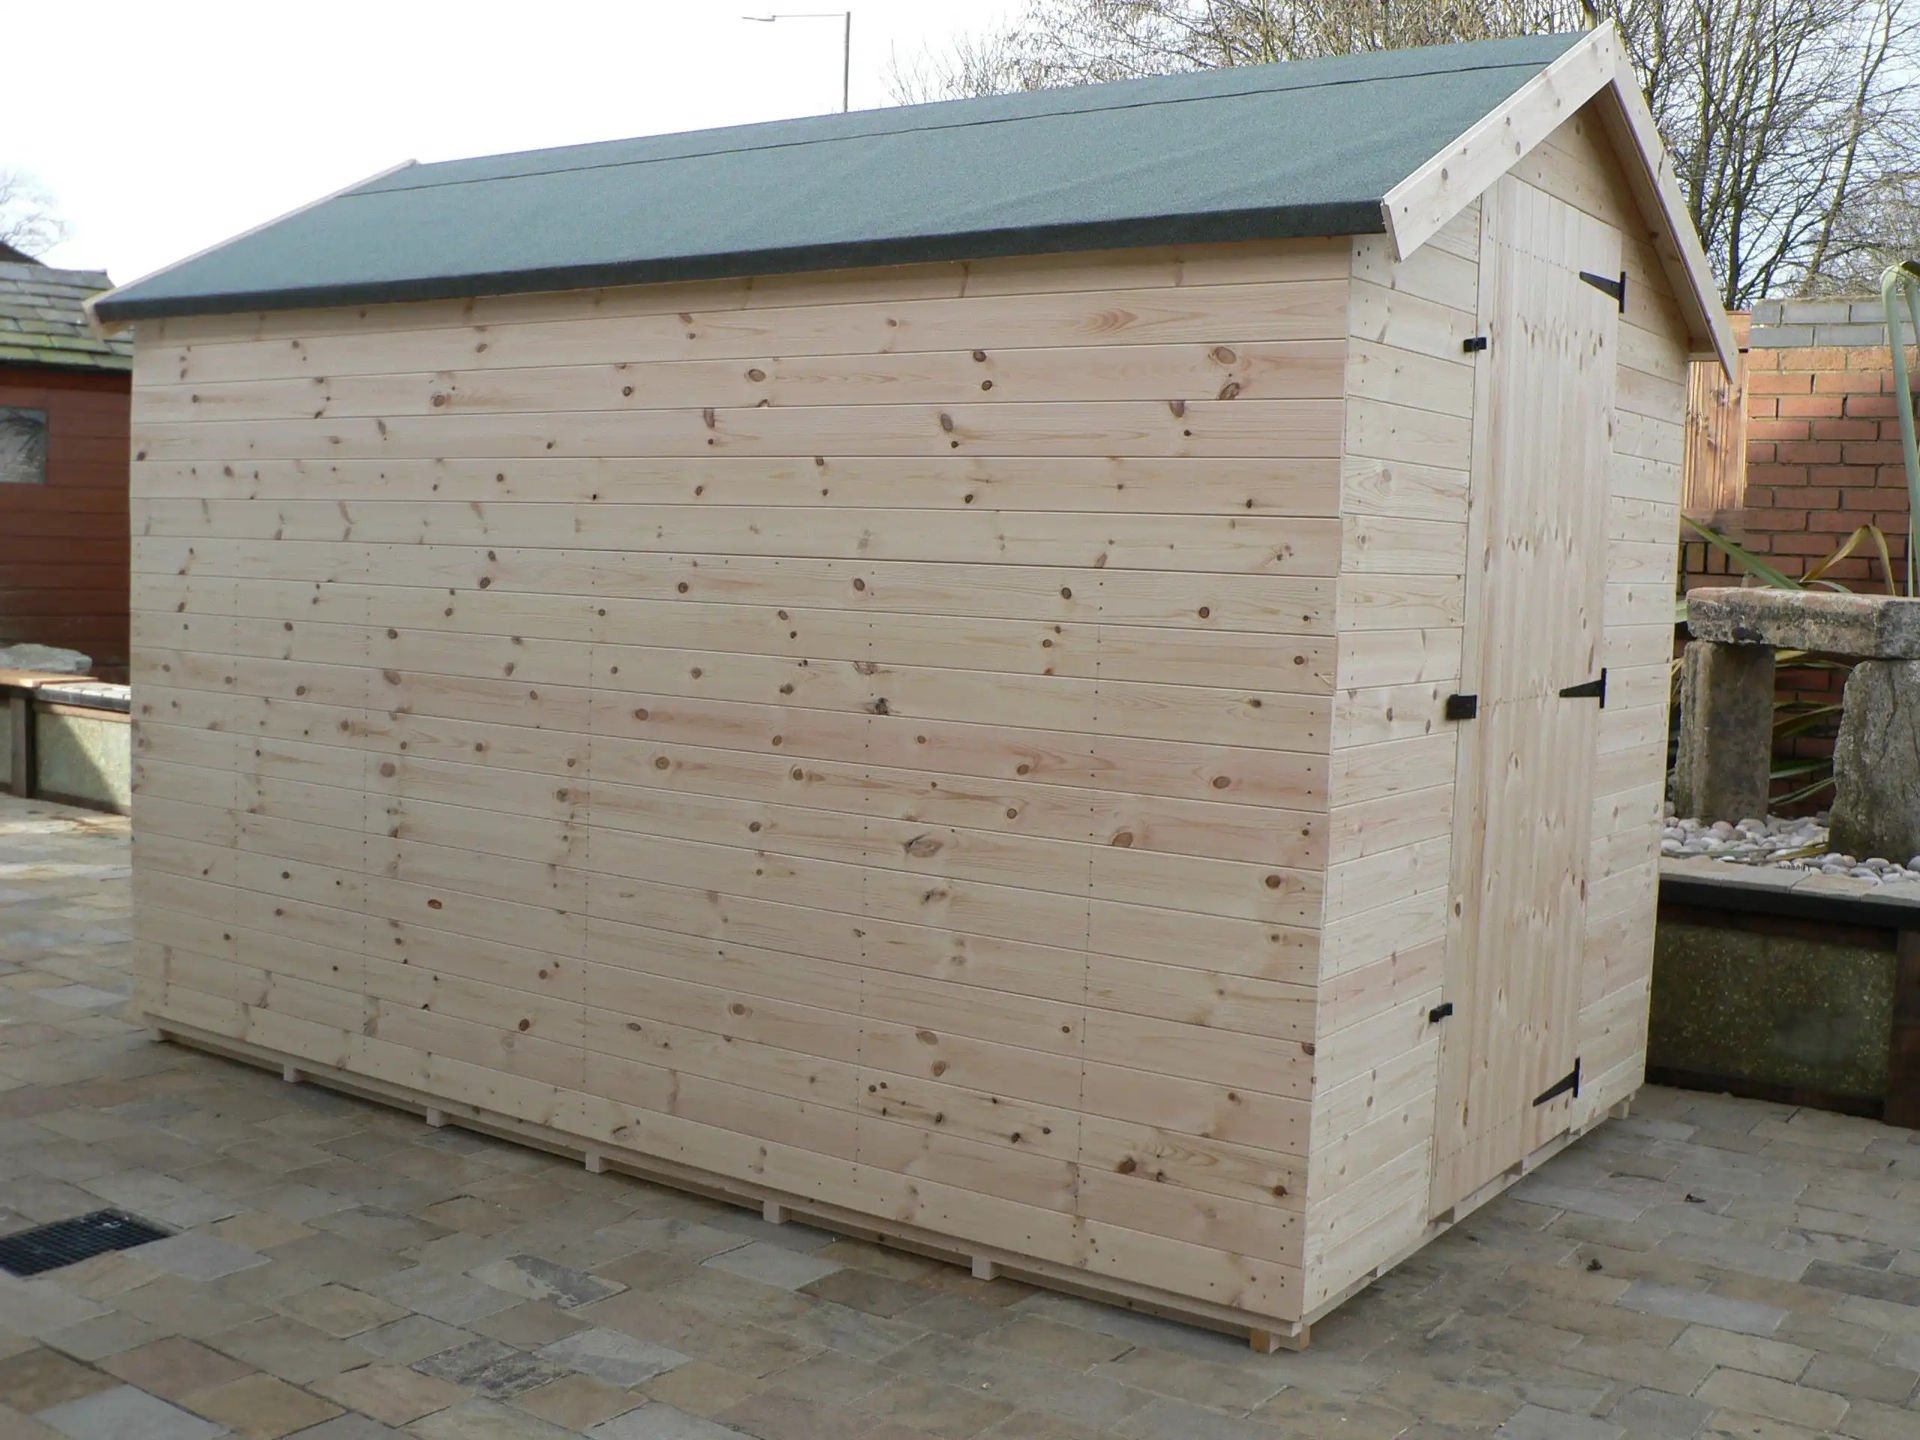 Sheds Manchester - 10' x 6' Apex Shed With No Windows And The Door Hinged On The Right